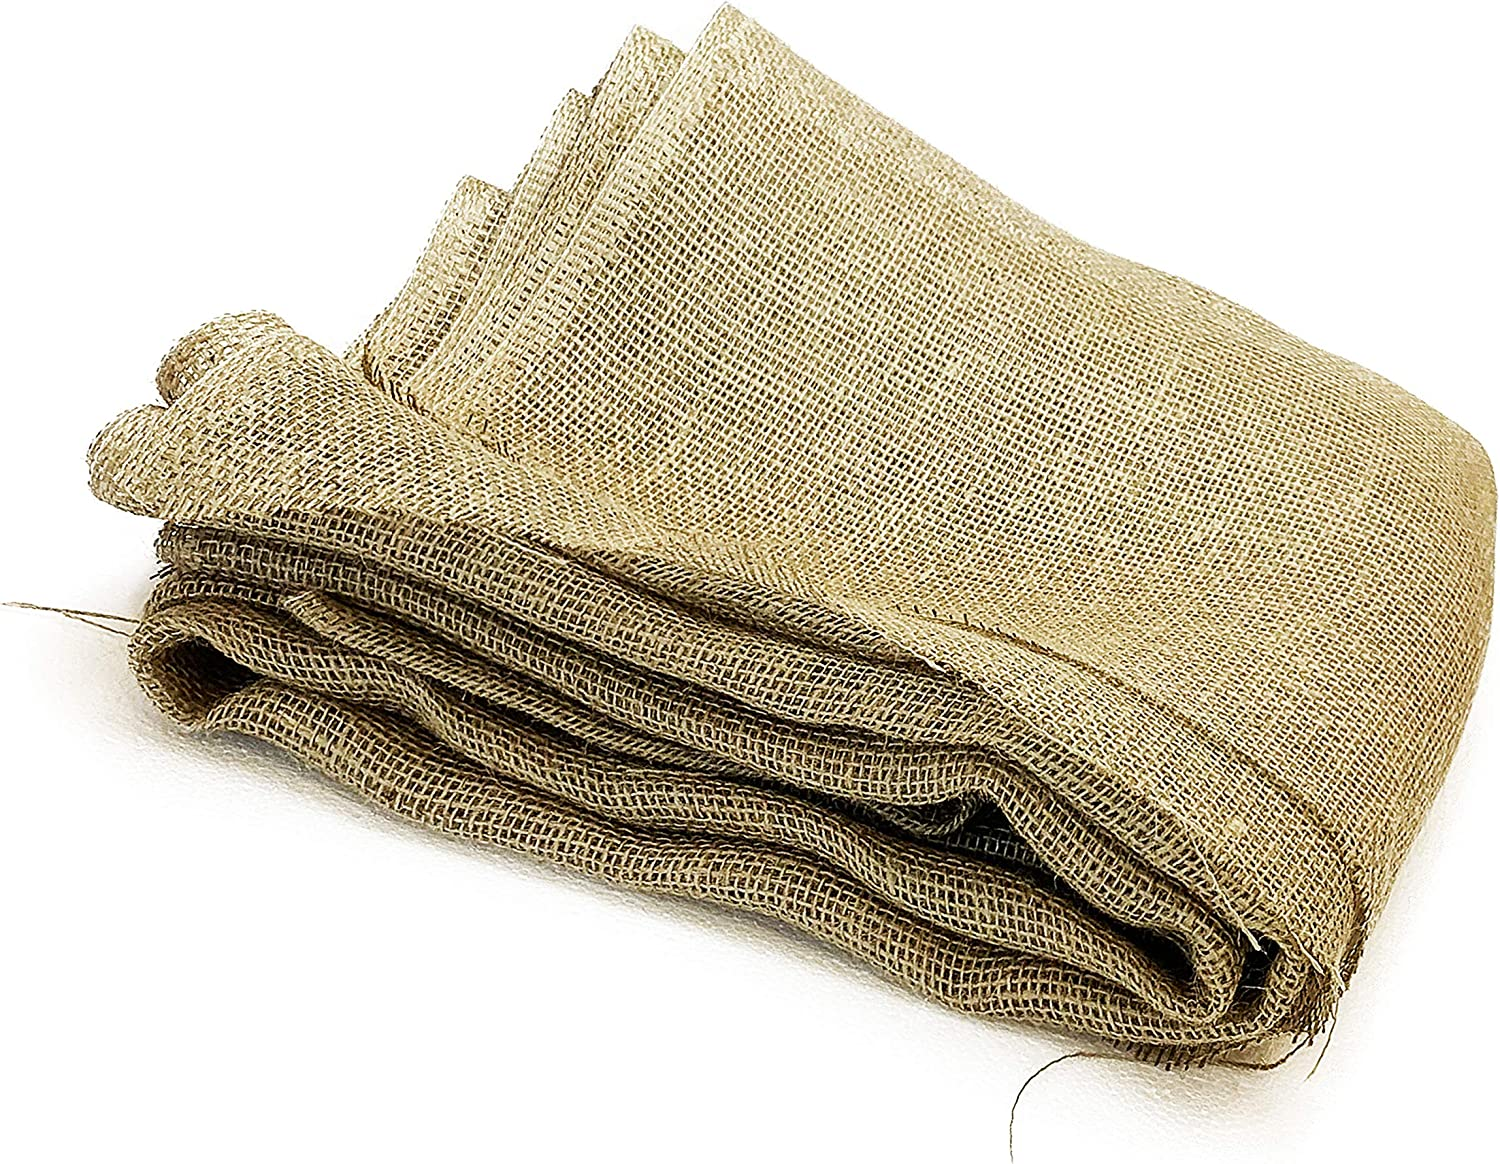 40 Inch X 15 Feet Gardening Burlap Liners, Loose Weave Jute-Burlap for Raised Bed, 50 Square-feet Seed Cover and Garden Blanket (40 Inch X 15 Feet, 40